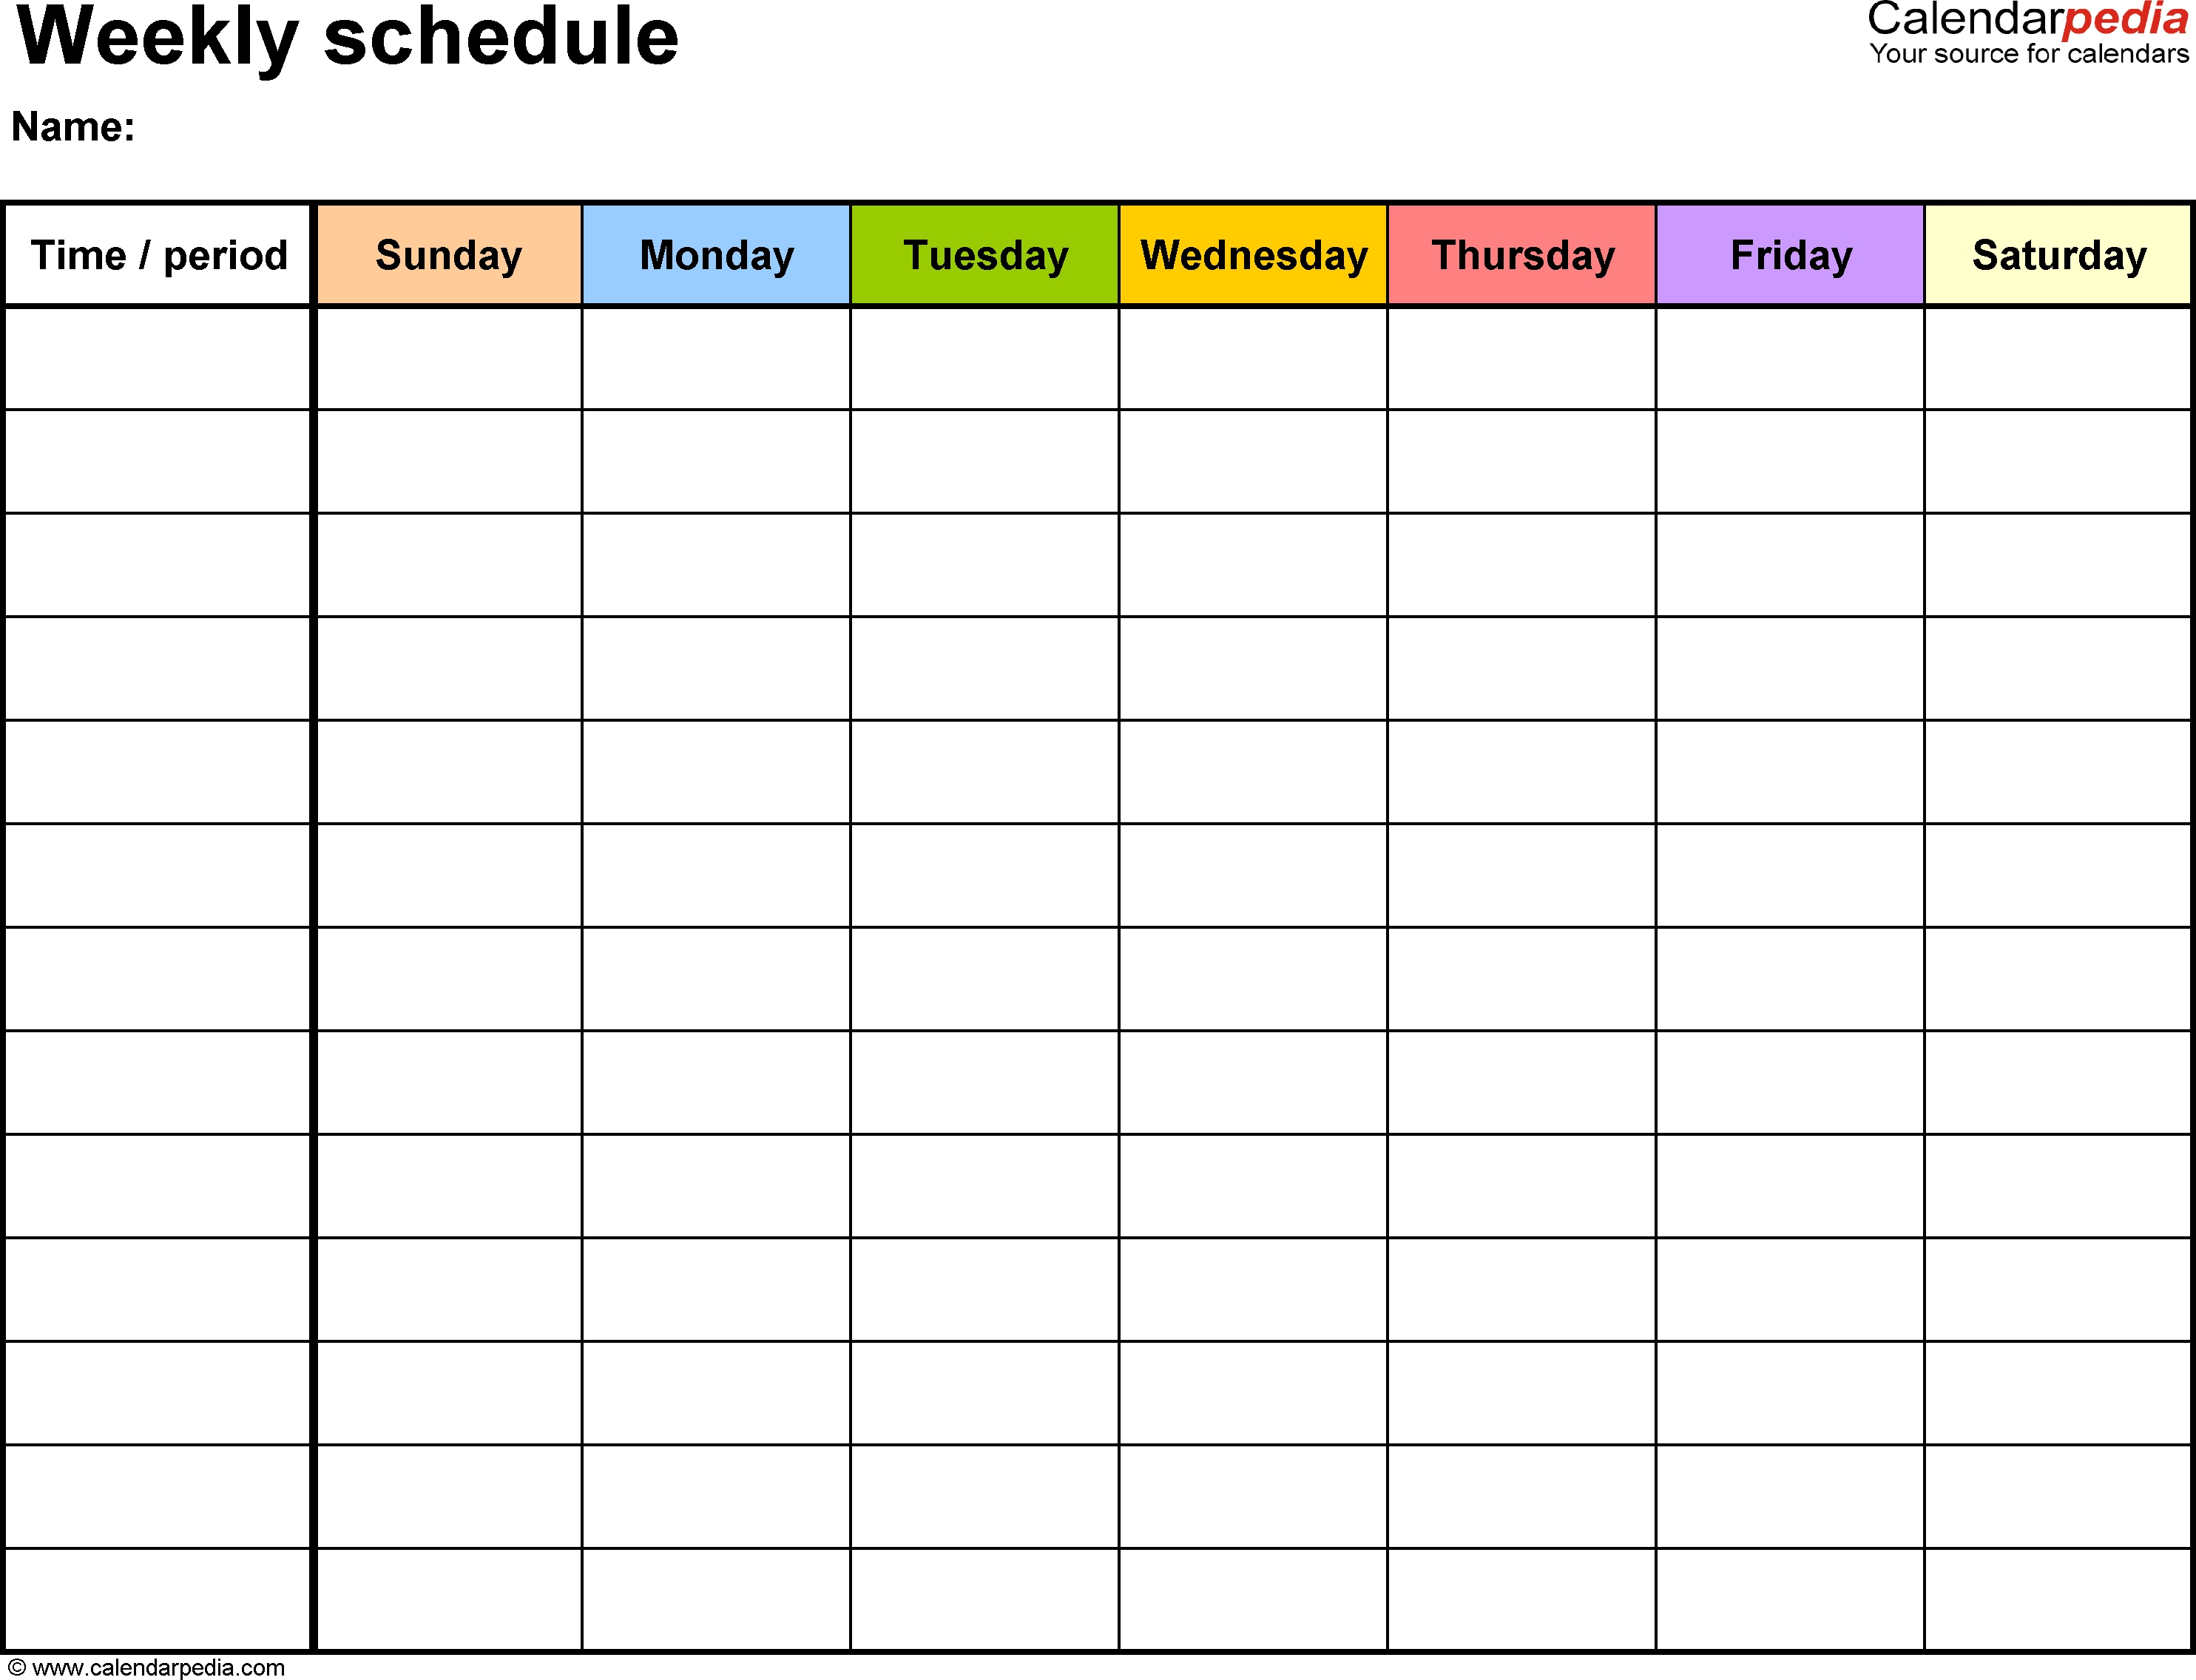 Free Weekly Schedule Templates For Excel - 18 Templates within Planning Monthly Calendar Excel Spreadsheet